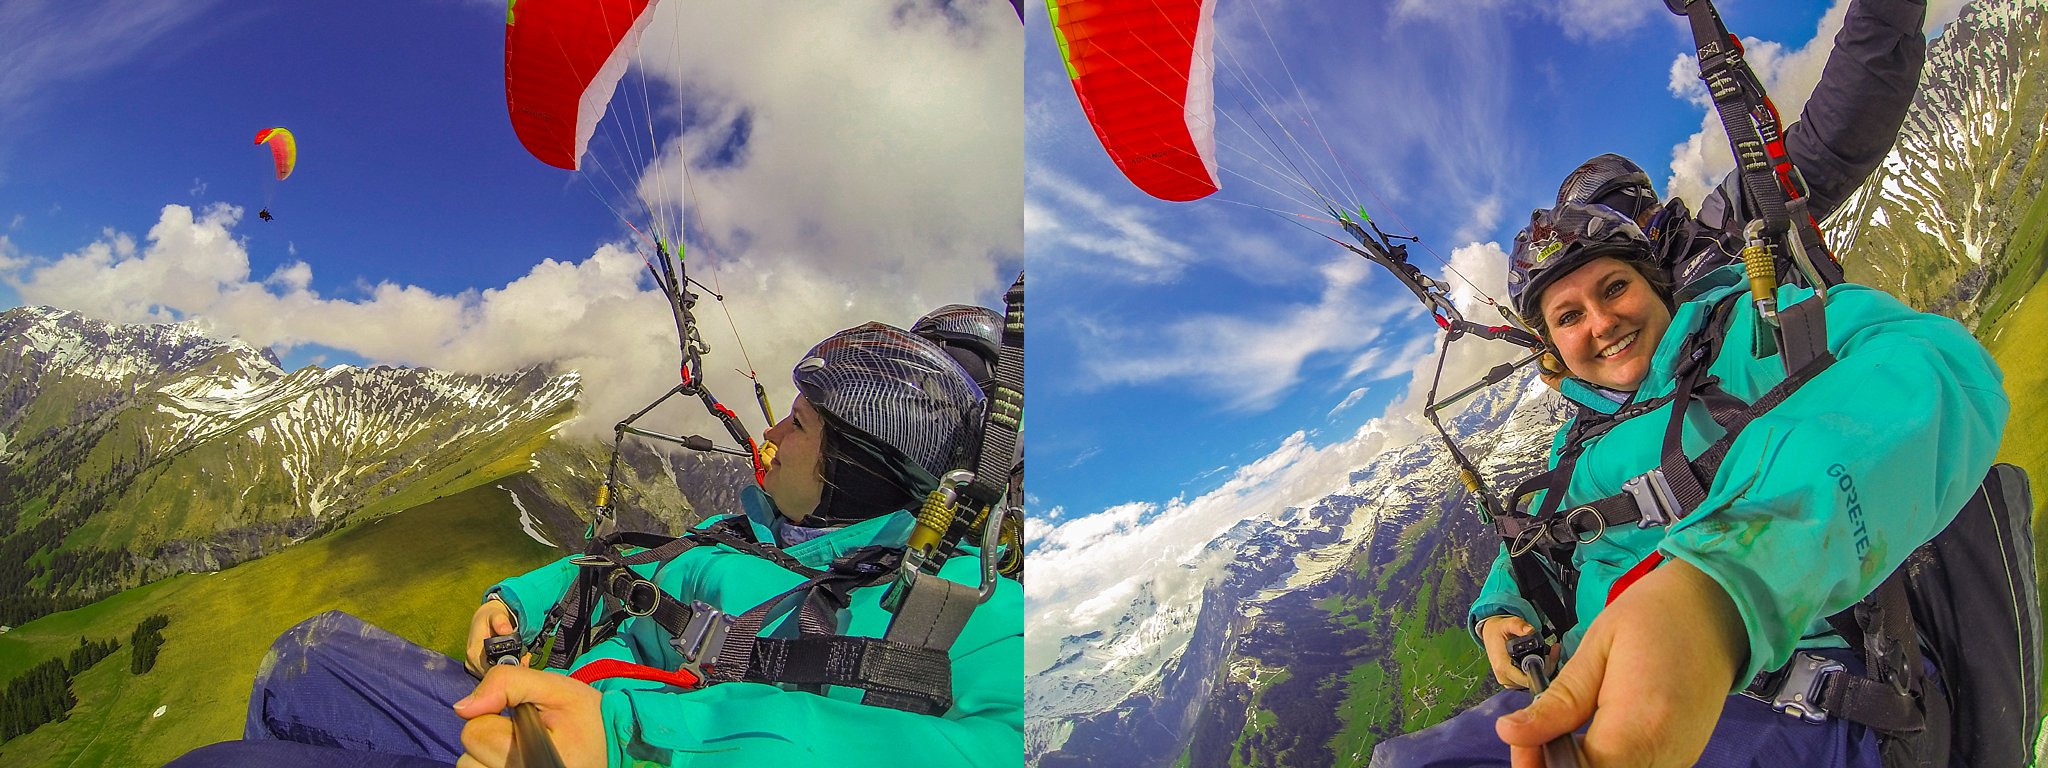 adelboden,adventure,adventure tourism,anniversary,anniversary trip,europe,european vacation,honeymoon,paragliding,switzerland,thrillseeker,